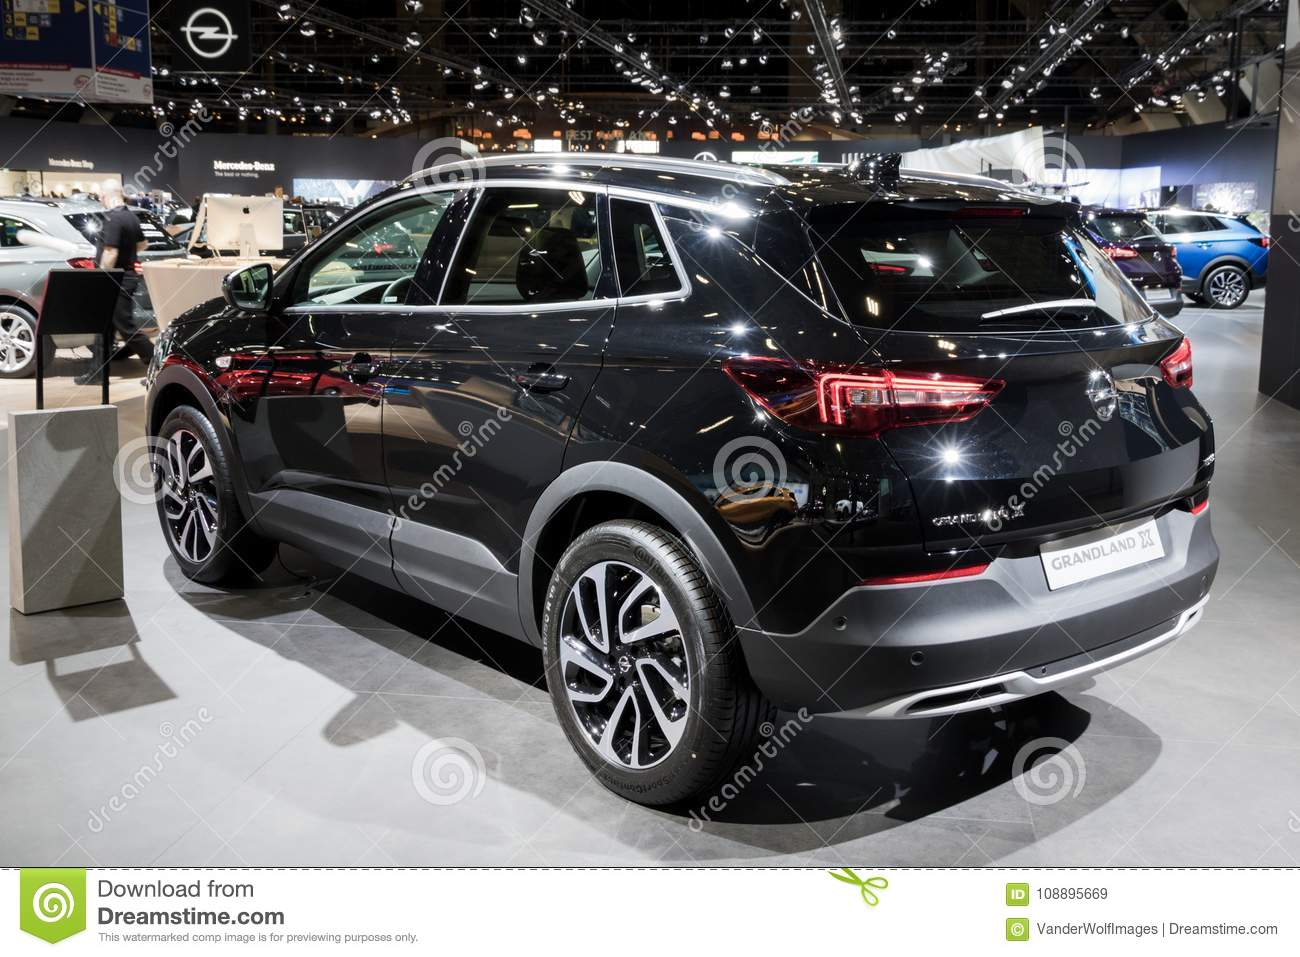 nouvelle voiture 2018 d 39 opel grandland x suv image stock ditorial image du conception neuf. Black Bedroom Furniture Sets. Home Design Ideas